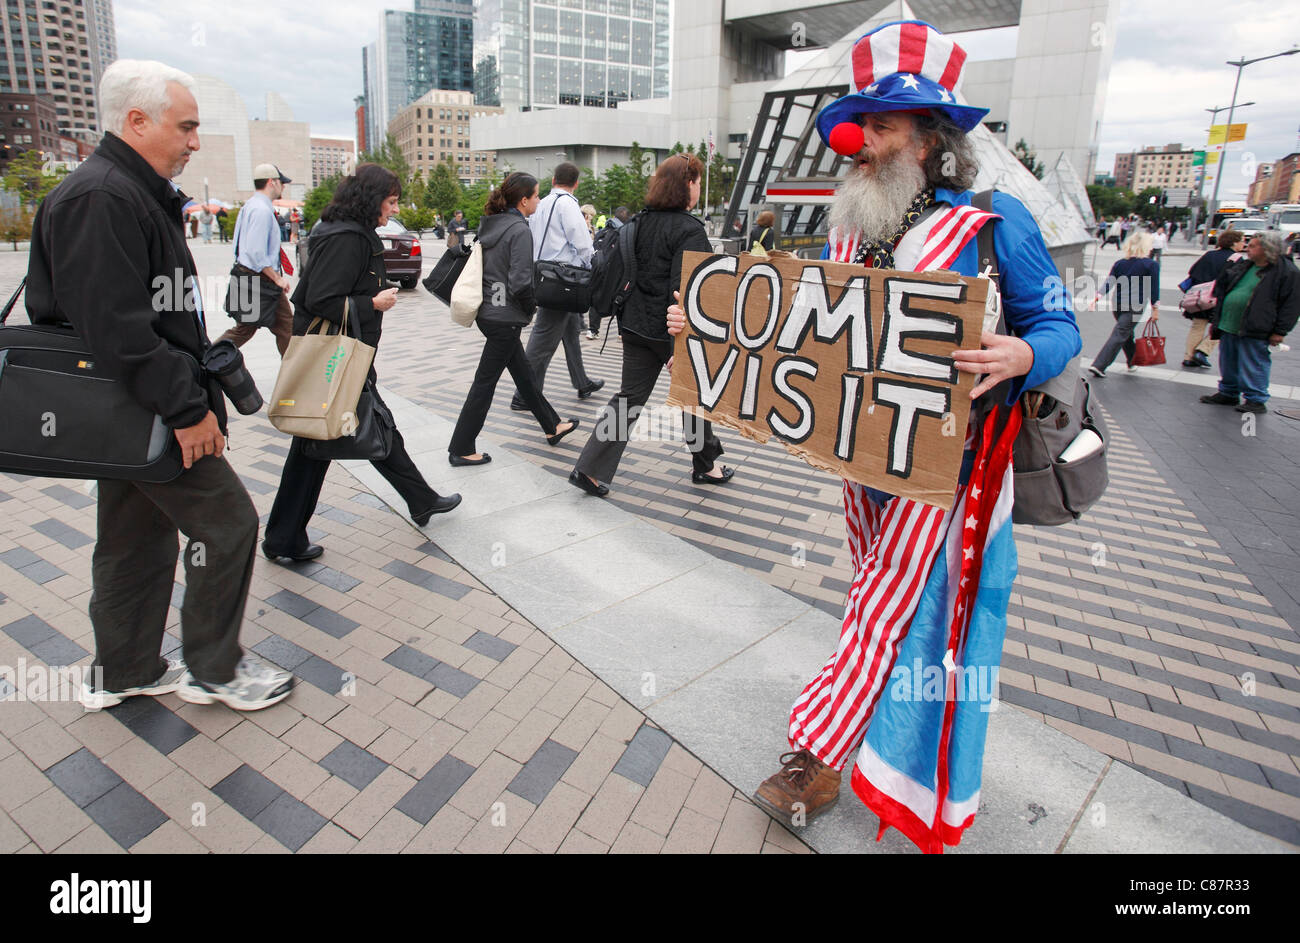 An Occupy Boston demonstrator protests in downtown Boston, Massachusetts, as commuters head home. - Stock Image